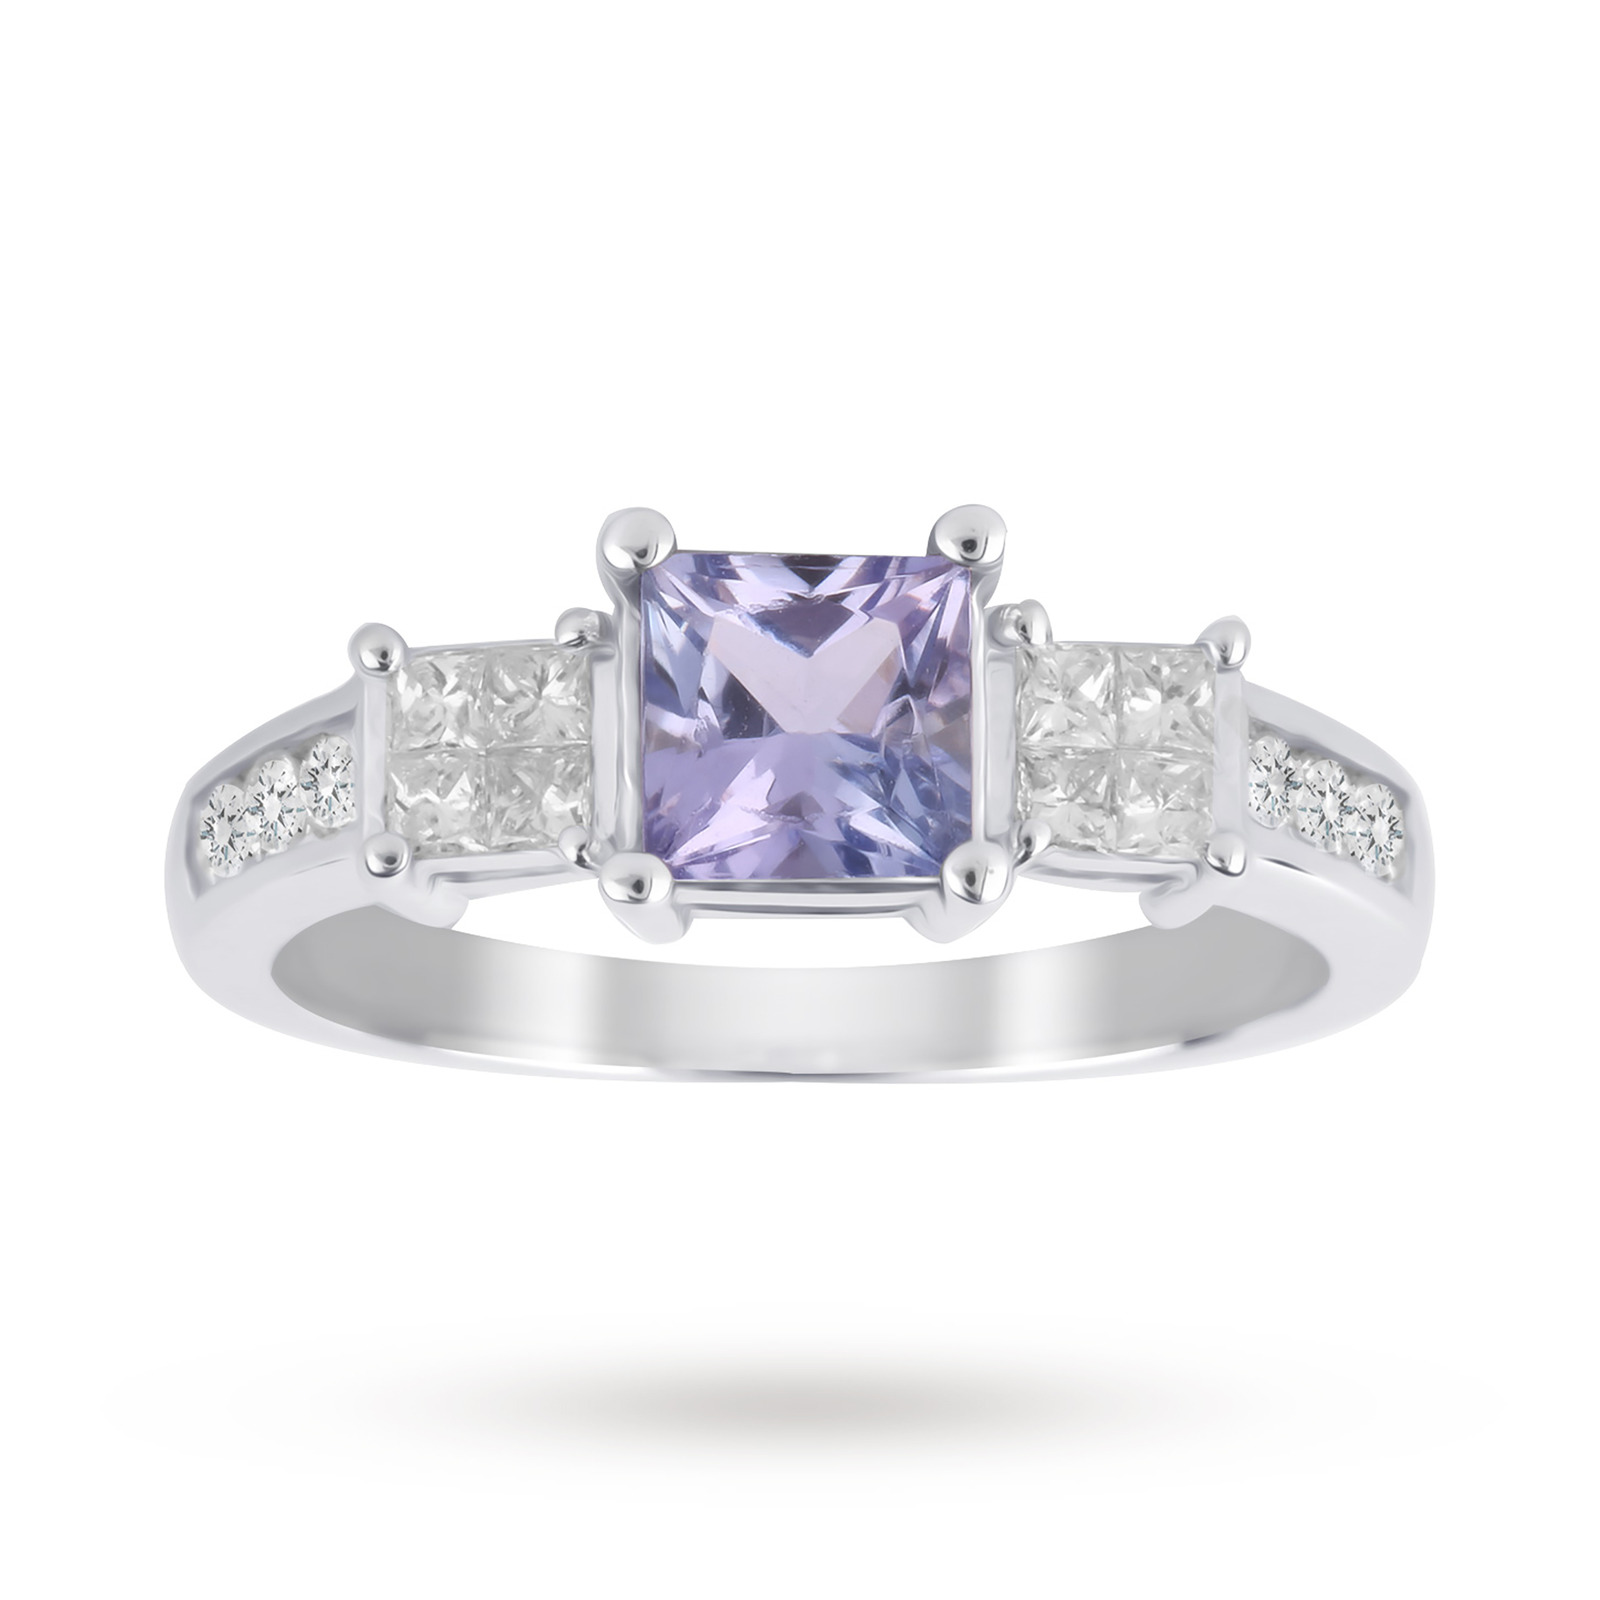 Tanzanite and Diamond Ring with Diamond Set Shoulders in 18 Carat White Gold - Ring Size J